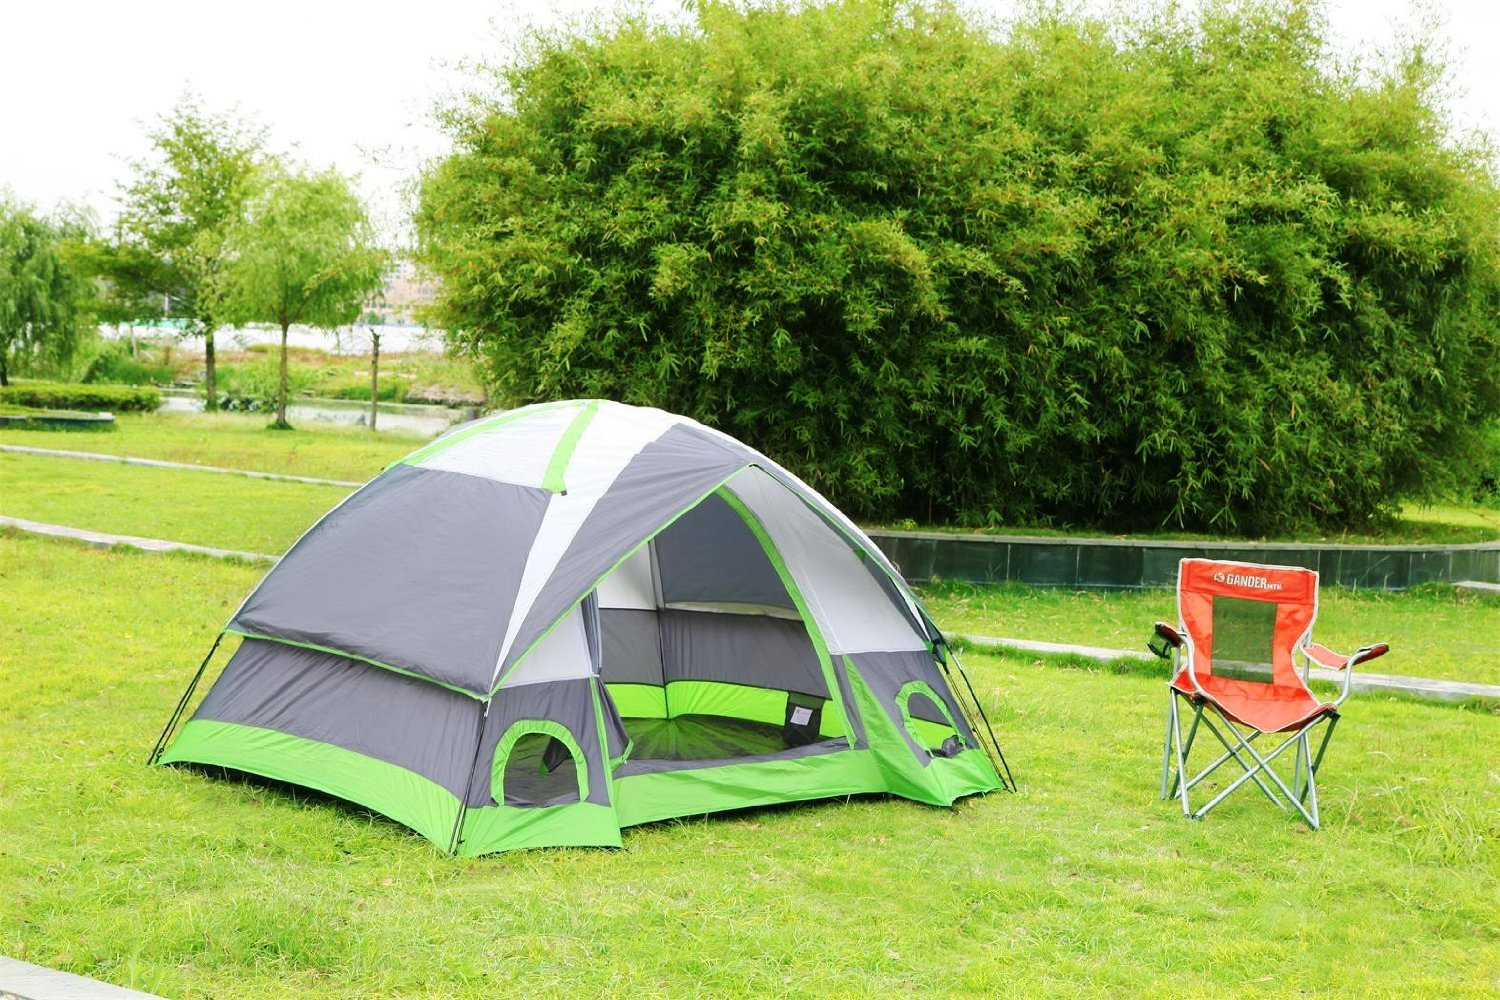 SEMOO Water Resistant D-Style Door, 4-Person Camping Traveling Family Dome Tent with Carry Bag by SEMOO